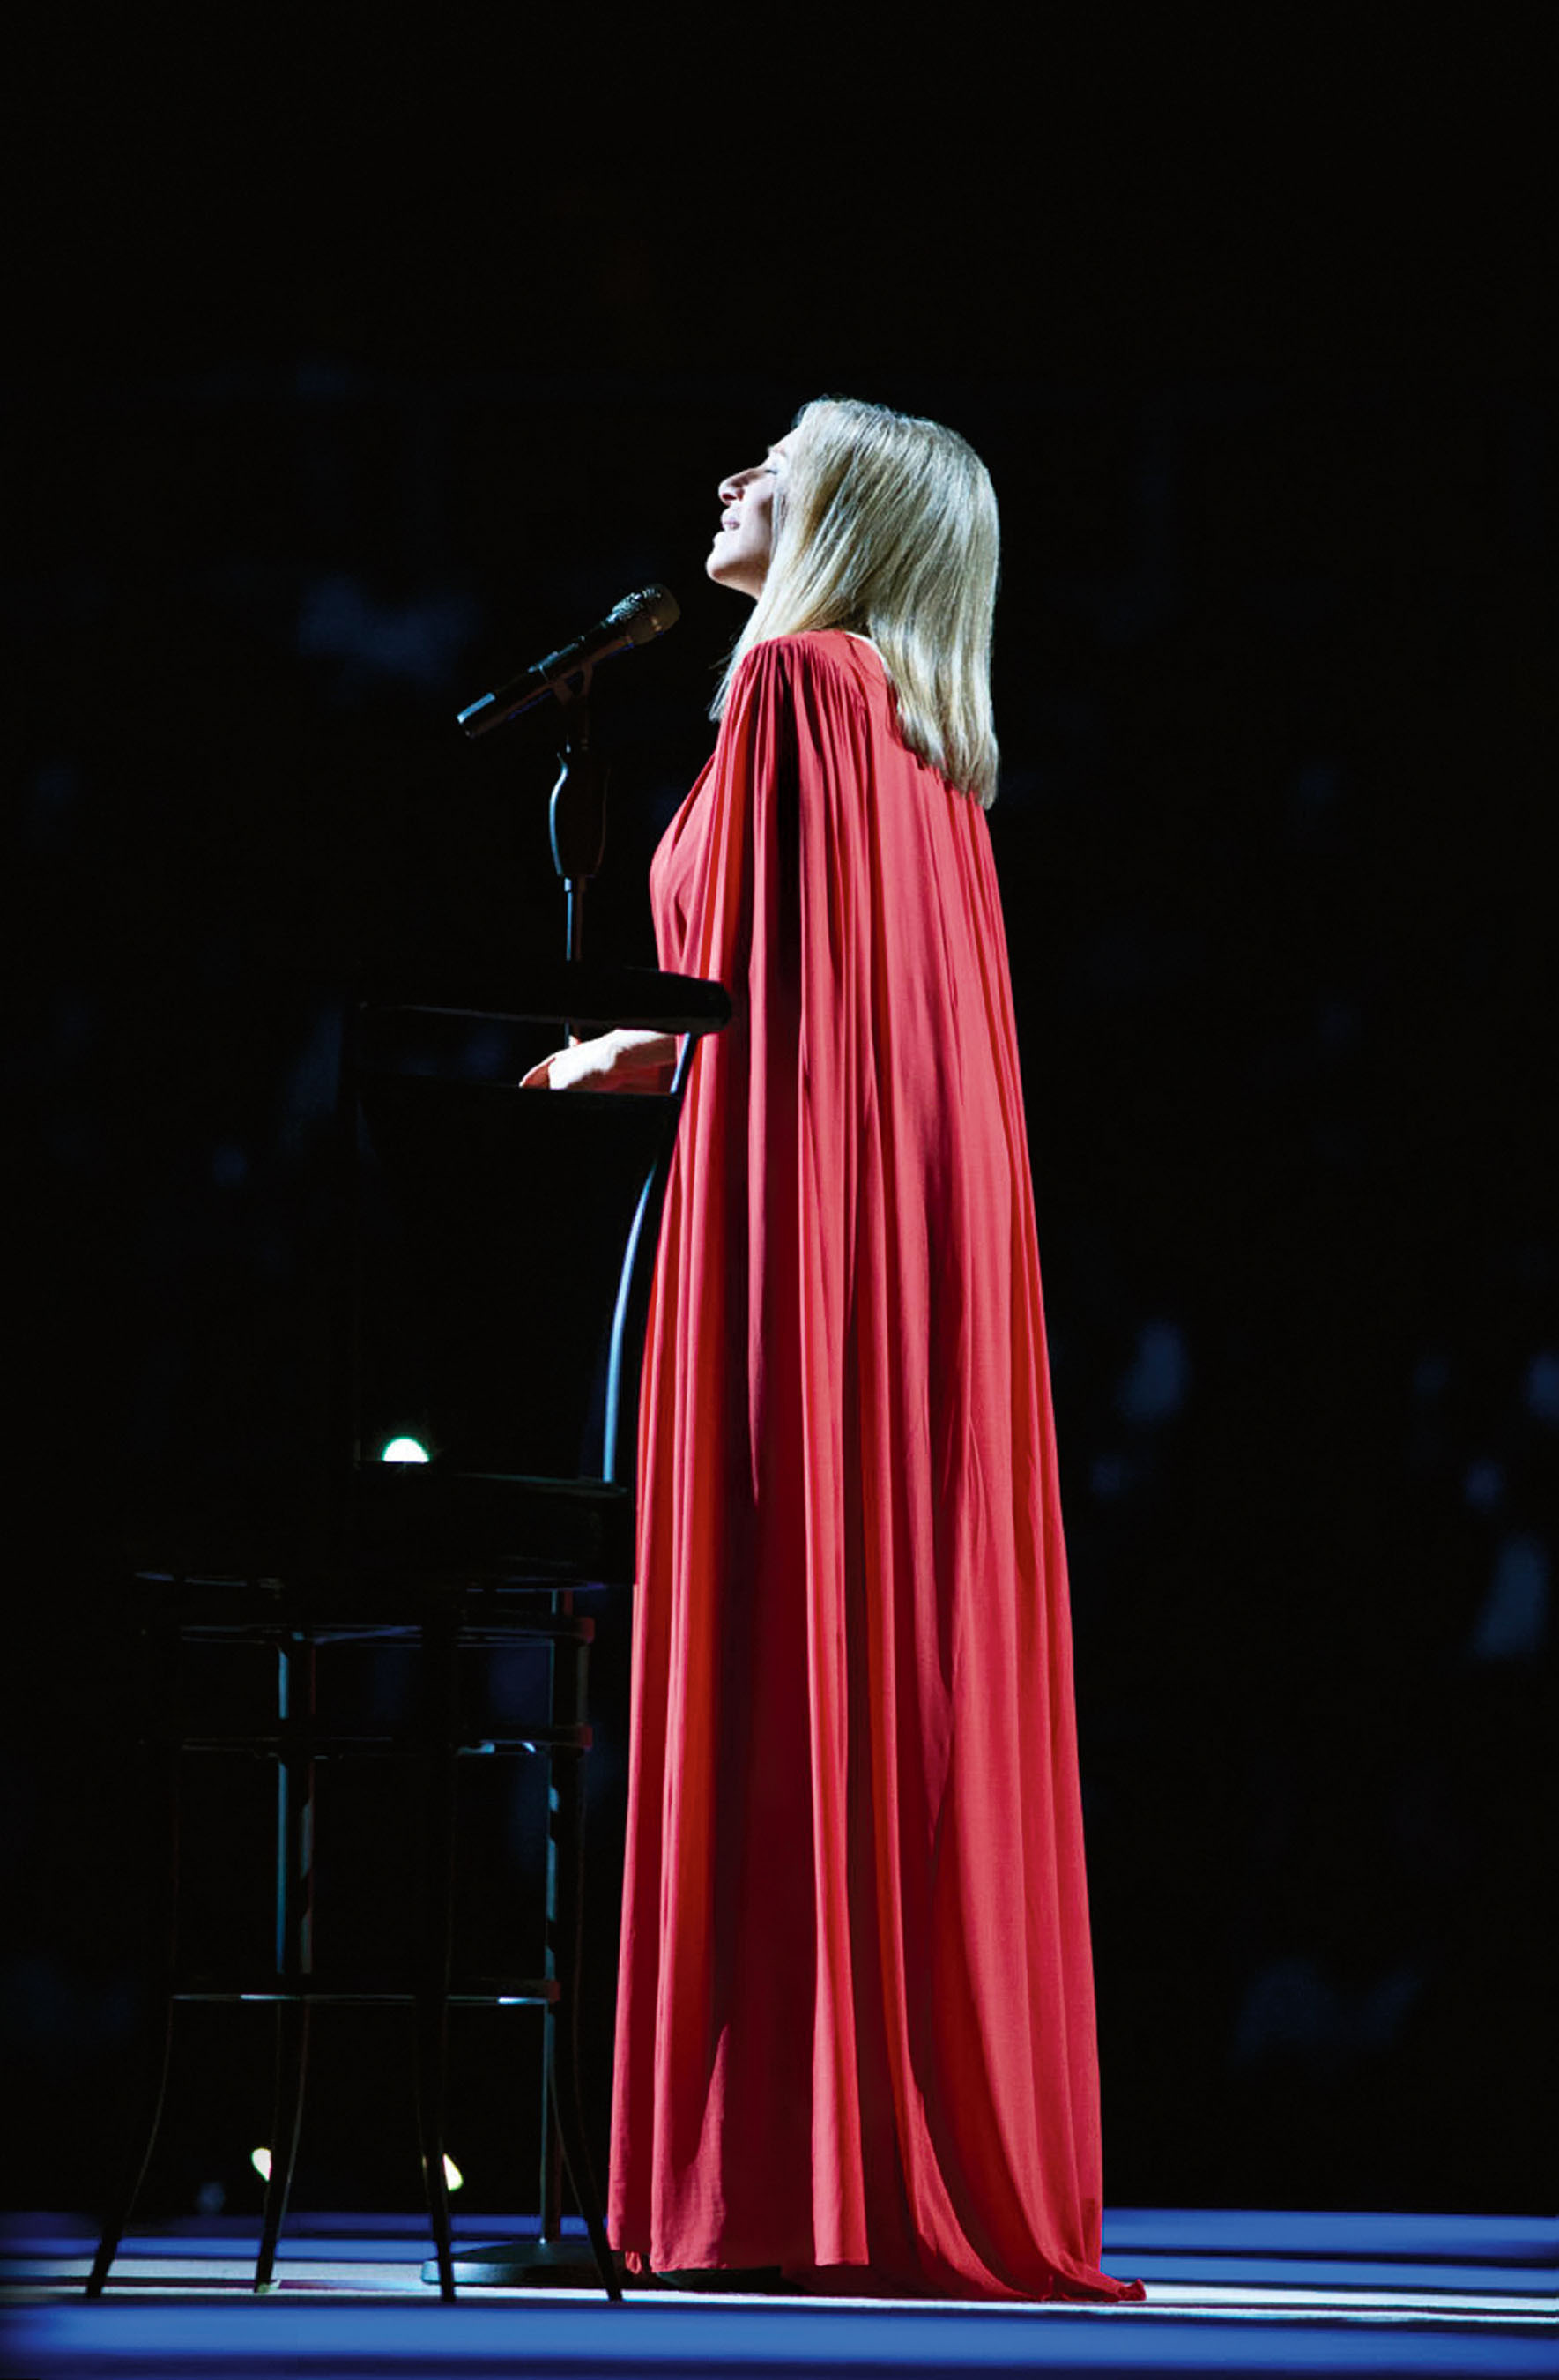 """Barbra Streisand's """"Back To Brooklyn"""" Concert To Debut November 25 As Columbia Records CD/DVD Package. (PRNewsFoto/Columbia Records, Russell James, Copyright Barwood) (PRNewsFoto/COLUMBIA RECORDS)"""